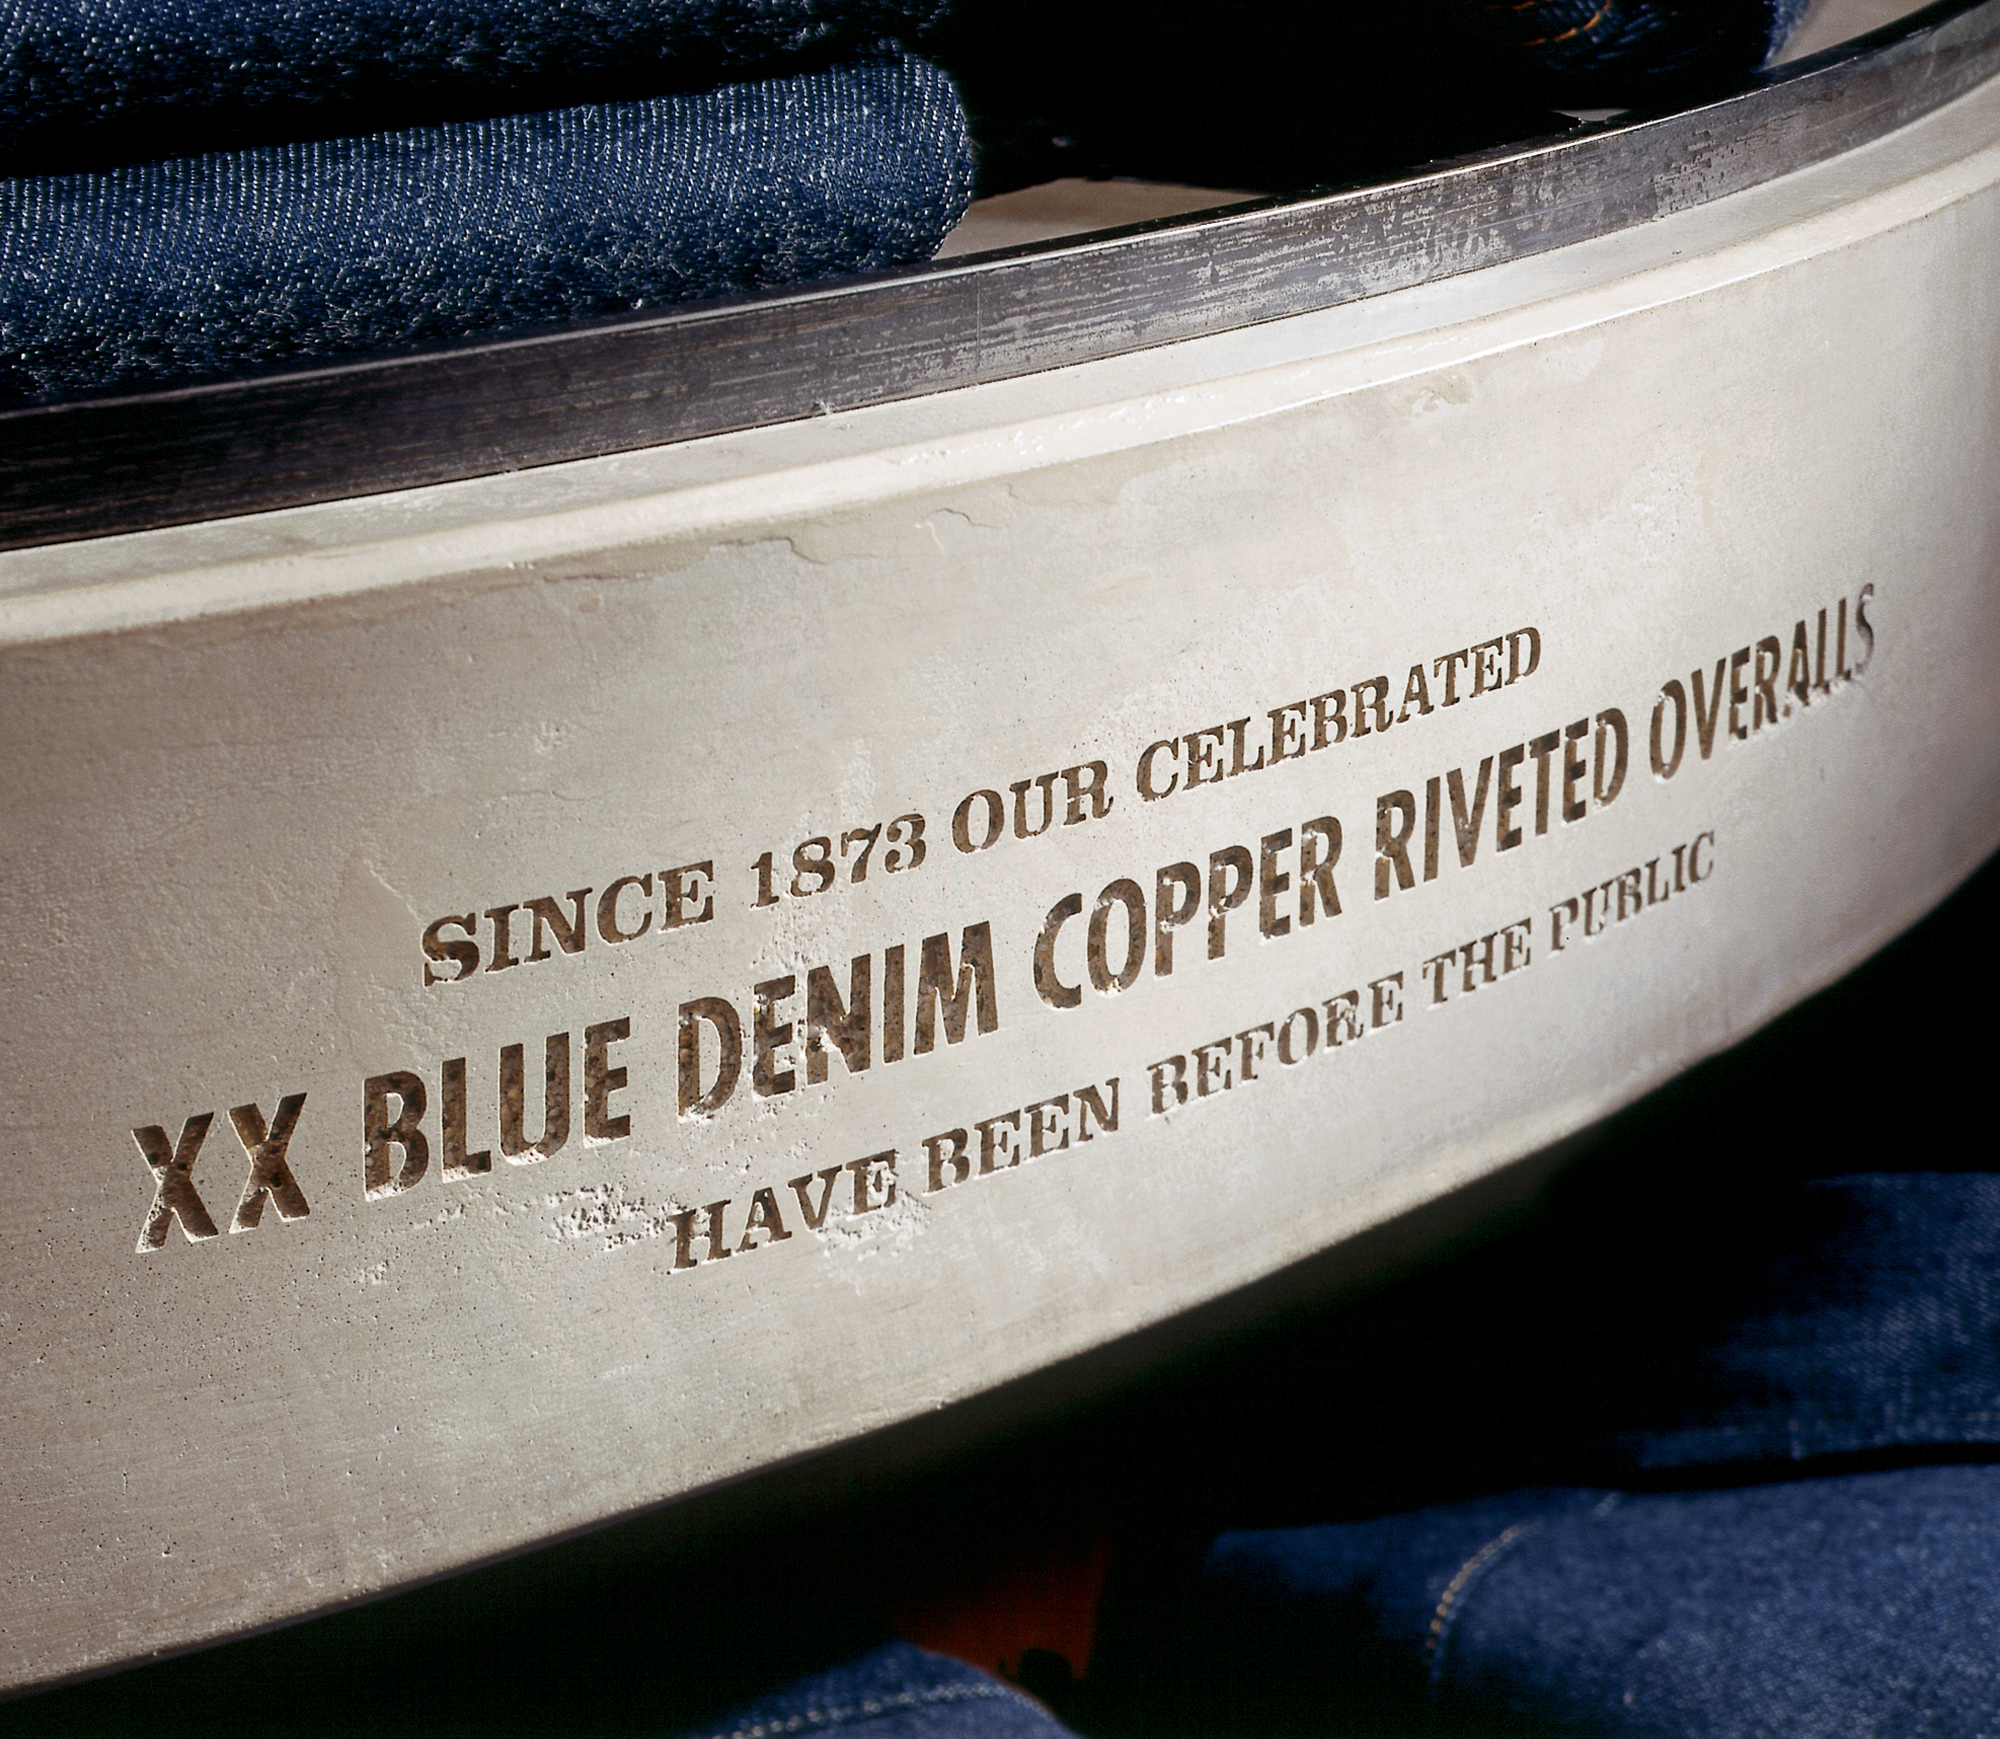 Embossed type on the side of a Levis product display